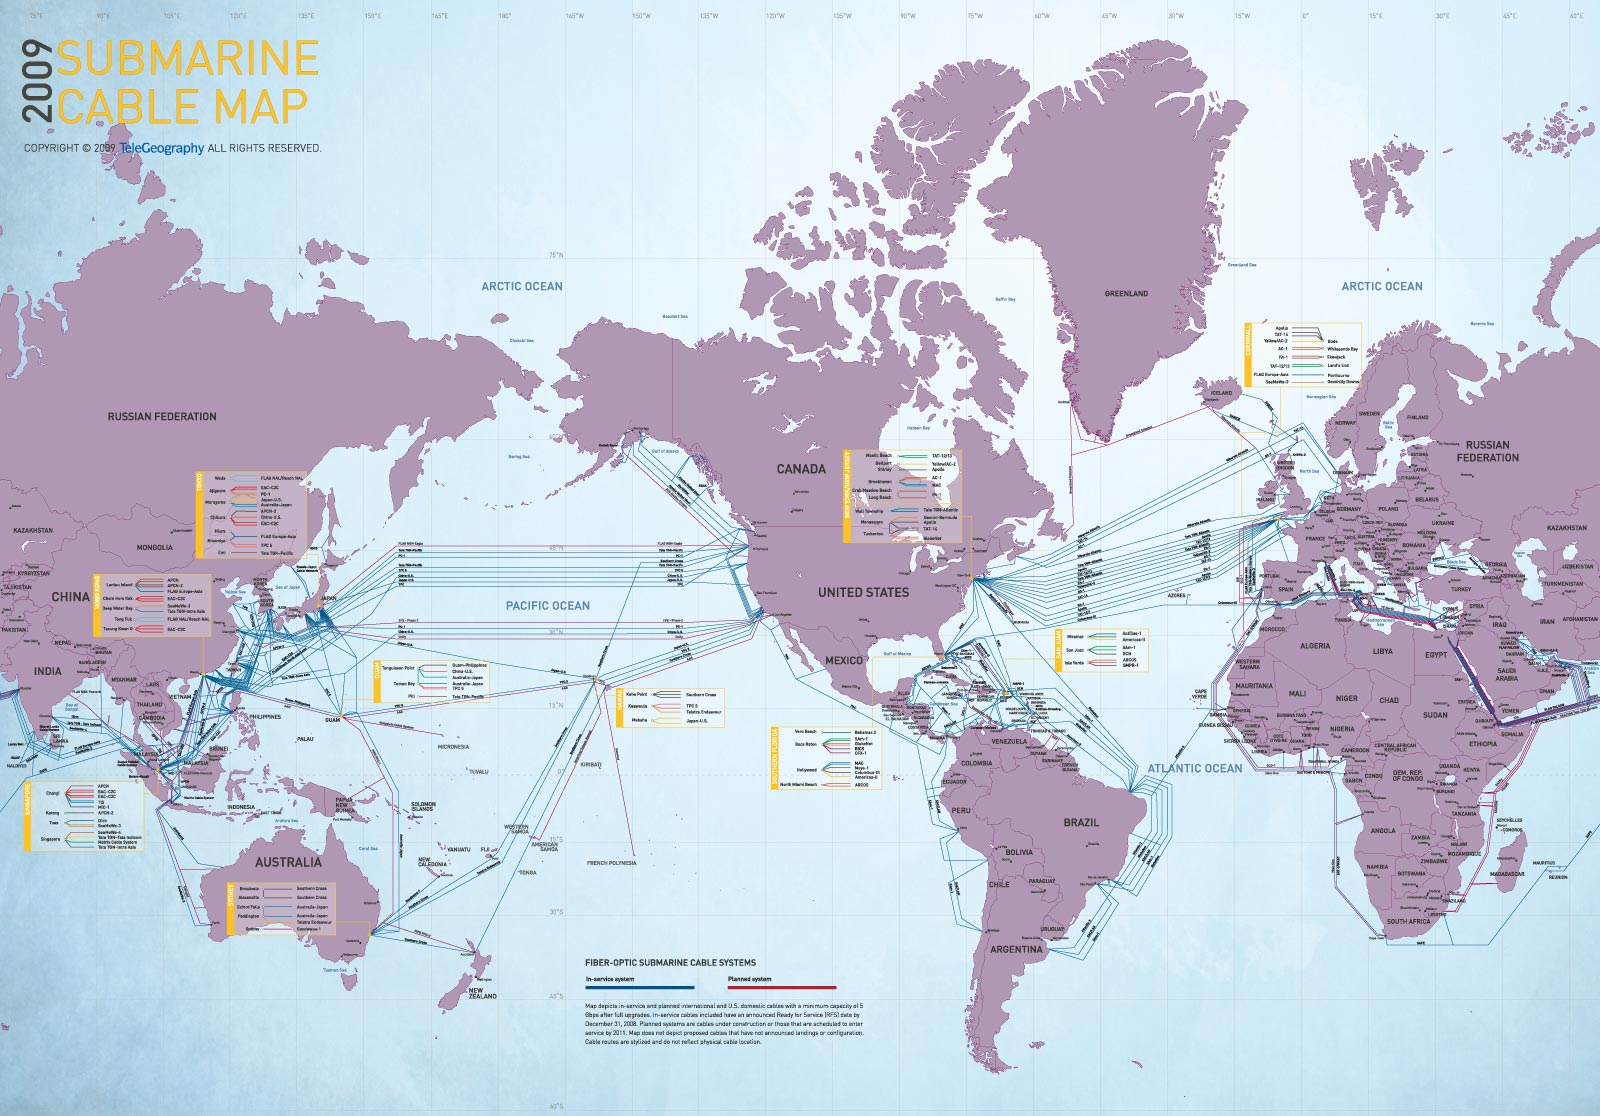 World Submarine Cable Map